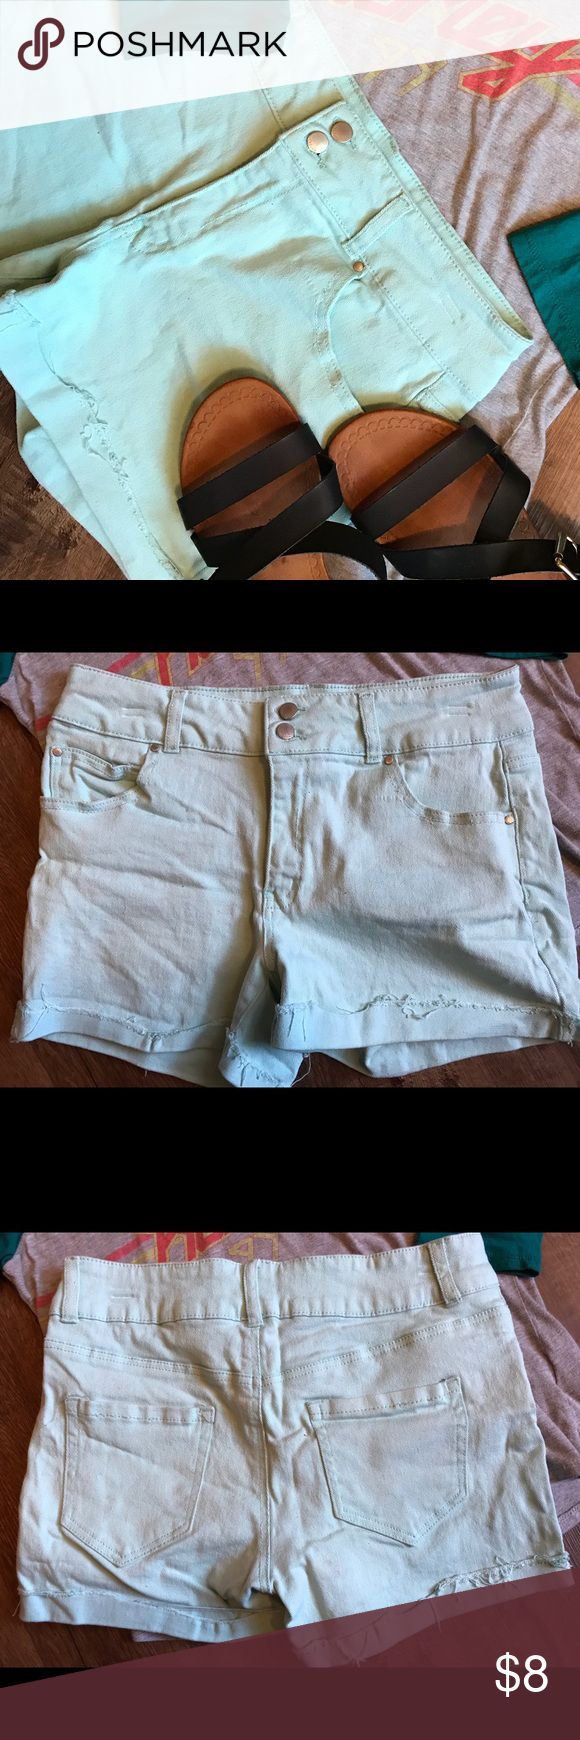 """High Waisted light Mint Green Shorts Fits size 10 rolled up frayed bottom. Have a double button on front and pockets are real. Only worn a few times, color is so light that it looks a little dirty could be fixed with soaking/washing. Can be double rolled at bottom to be made shorter. Waist 32"""" Length 12""""  Inseam 3.5"""" refuge Shorts"""